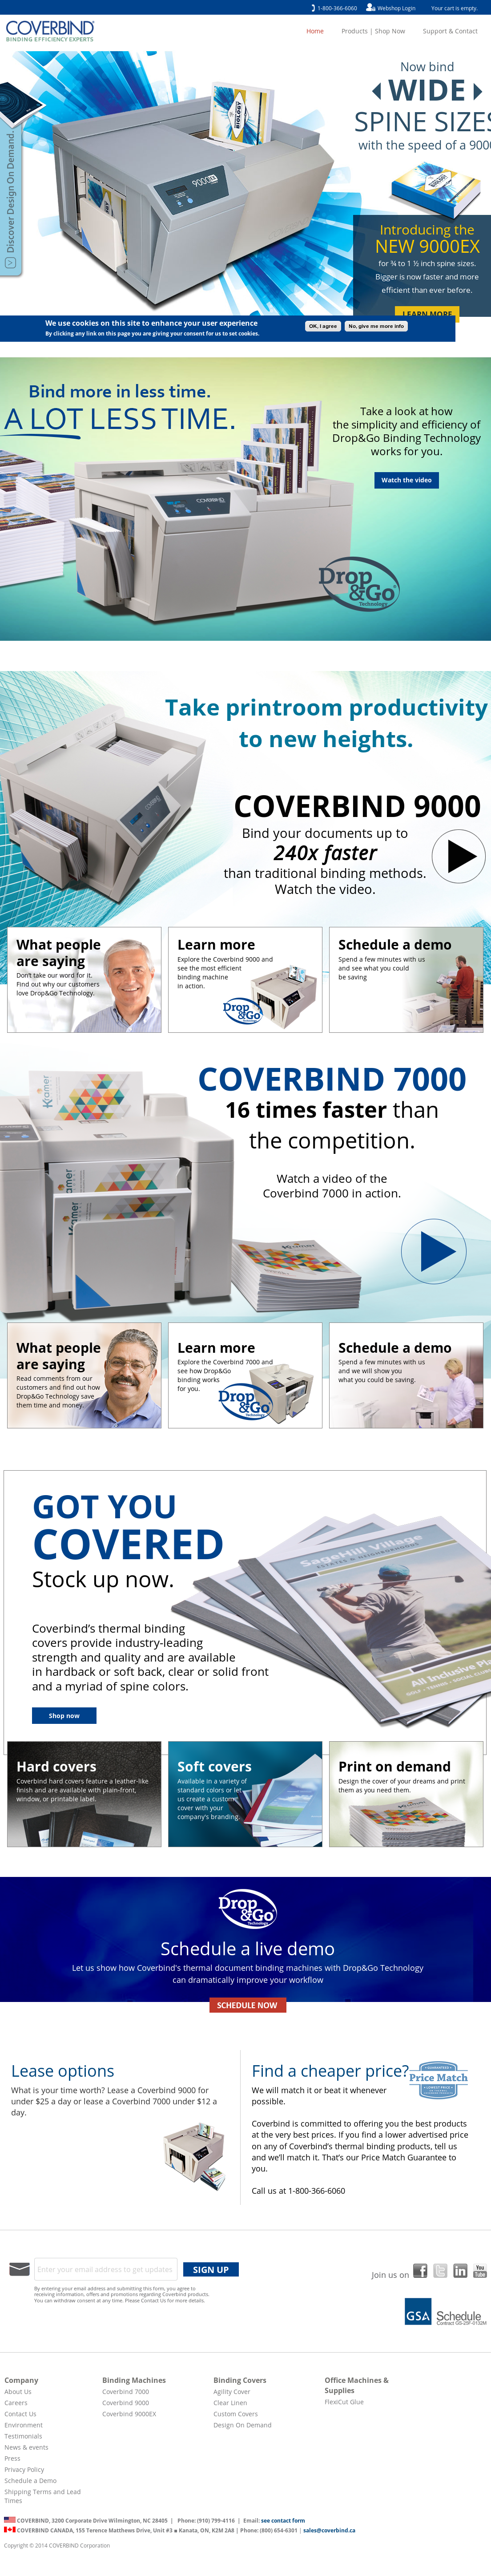 COVERBIND Competitors, Revenue and Employees - Owler Company Profile